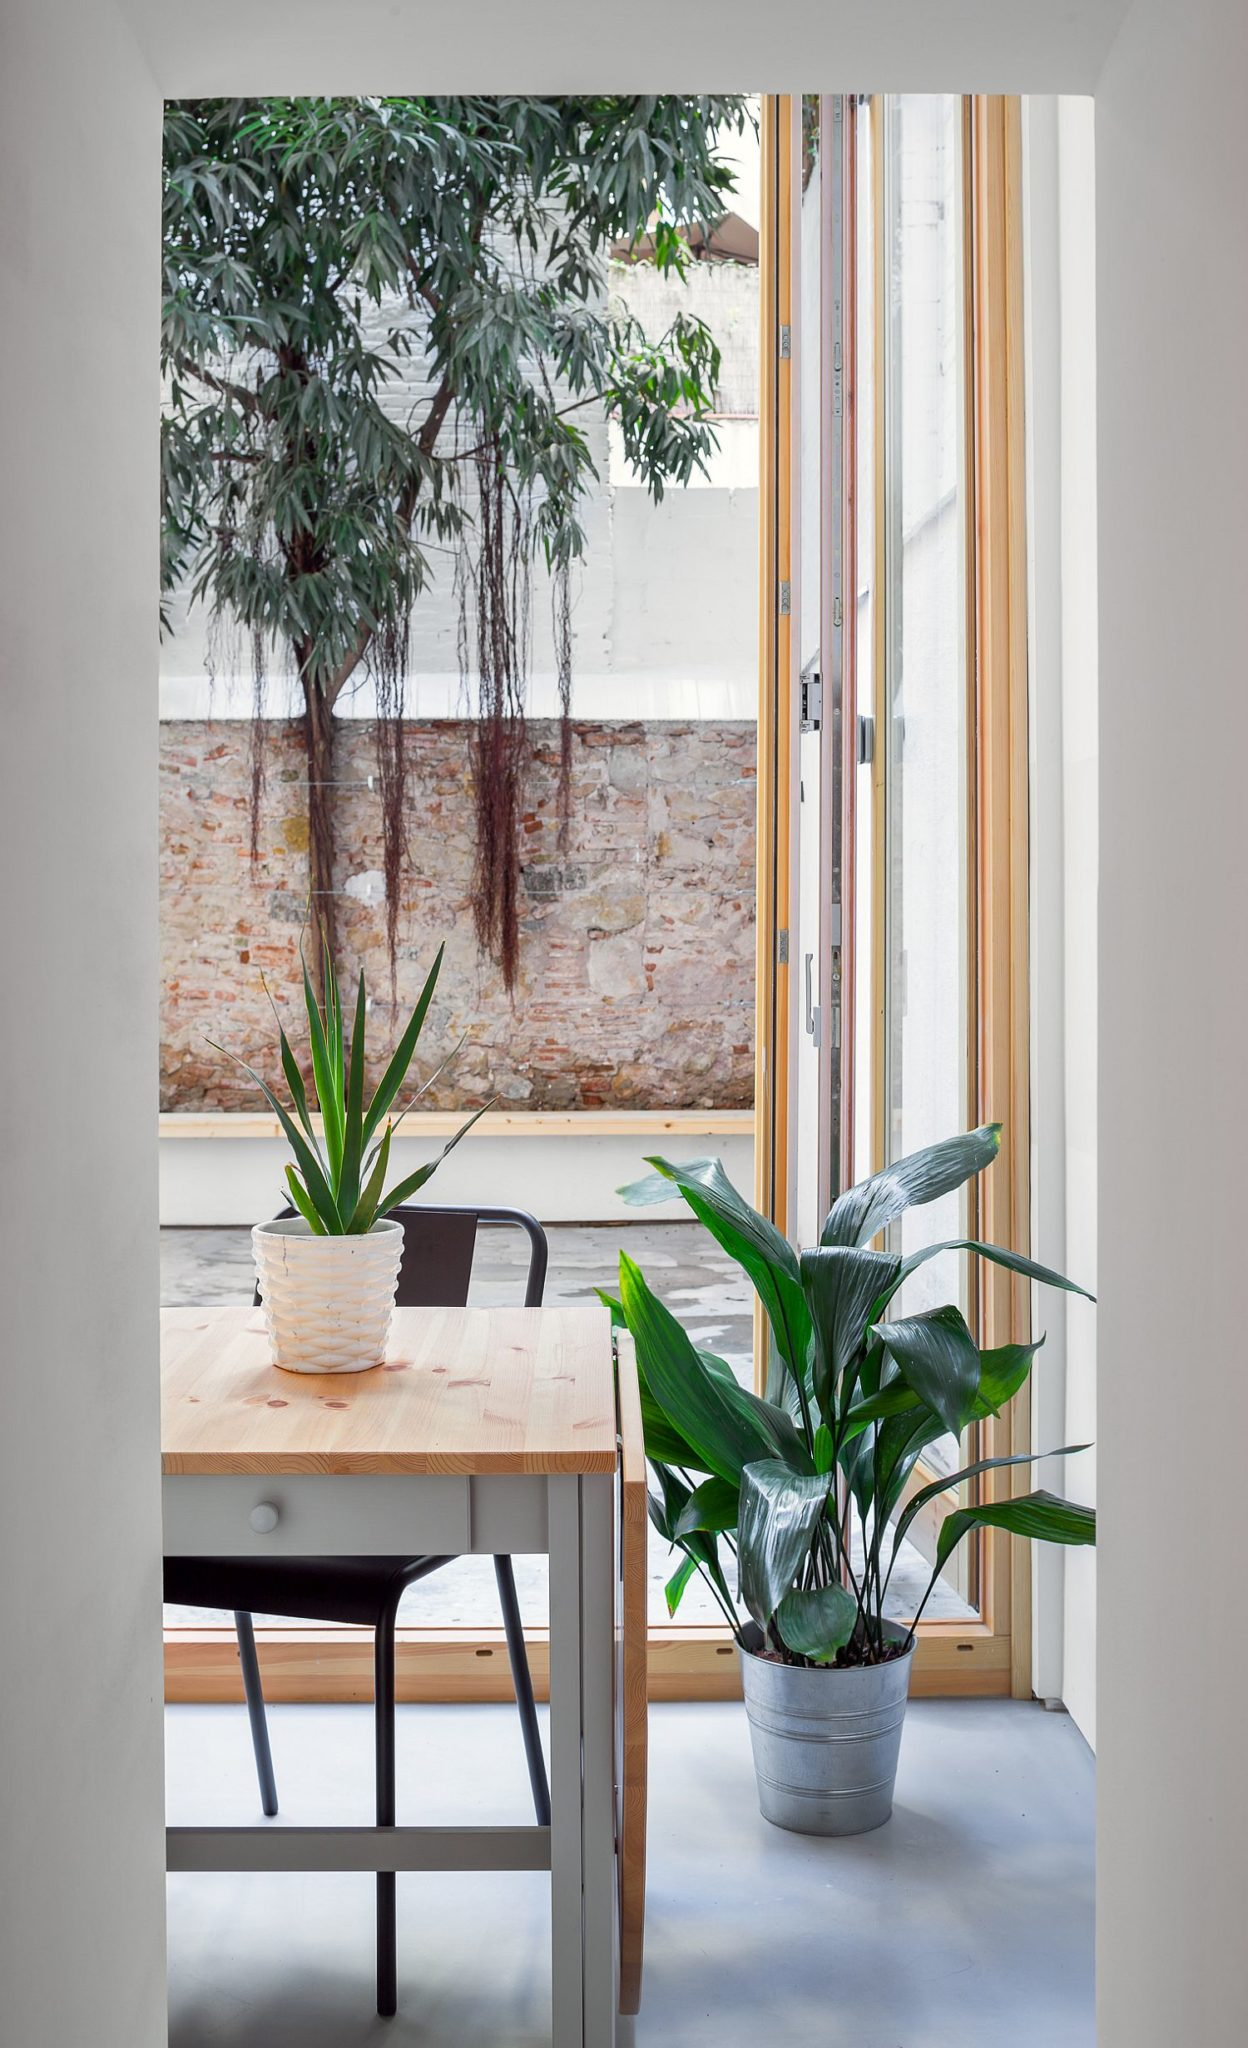 Greenery becomes an integral part of the neutral interior